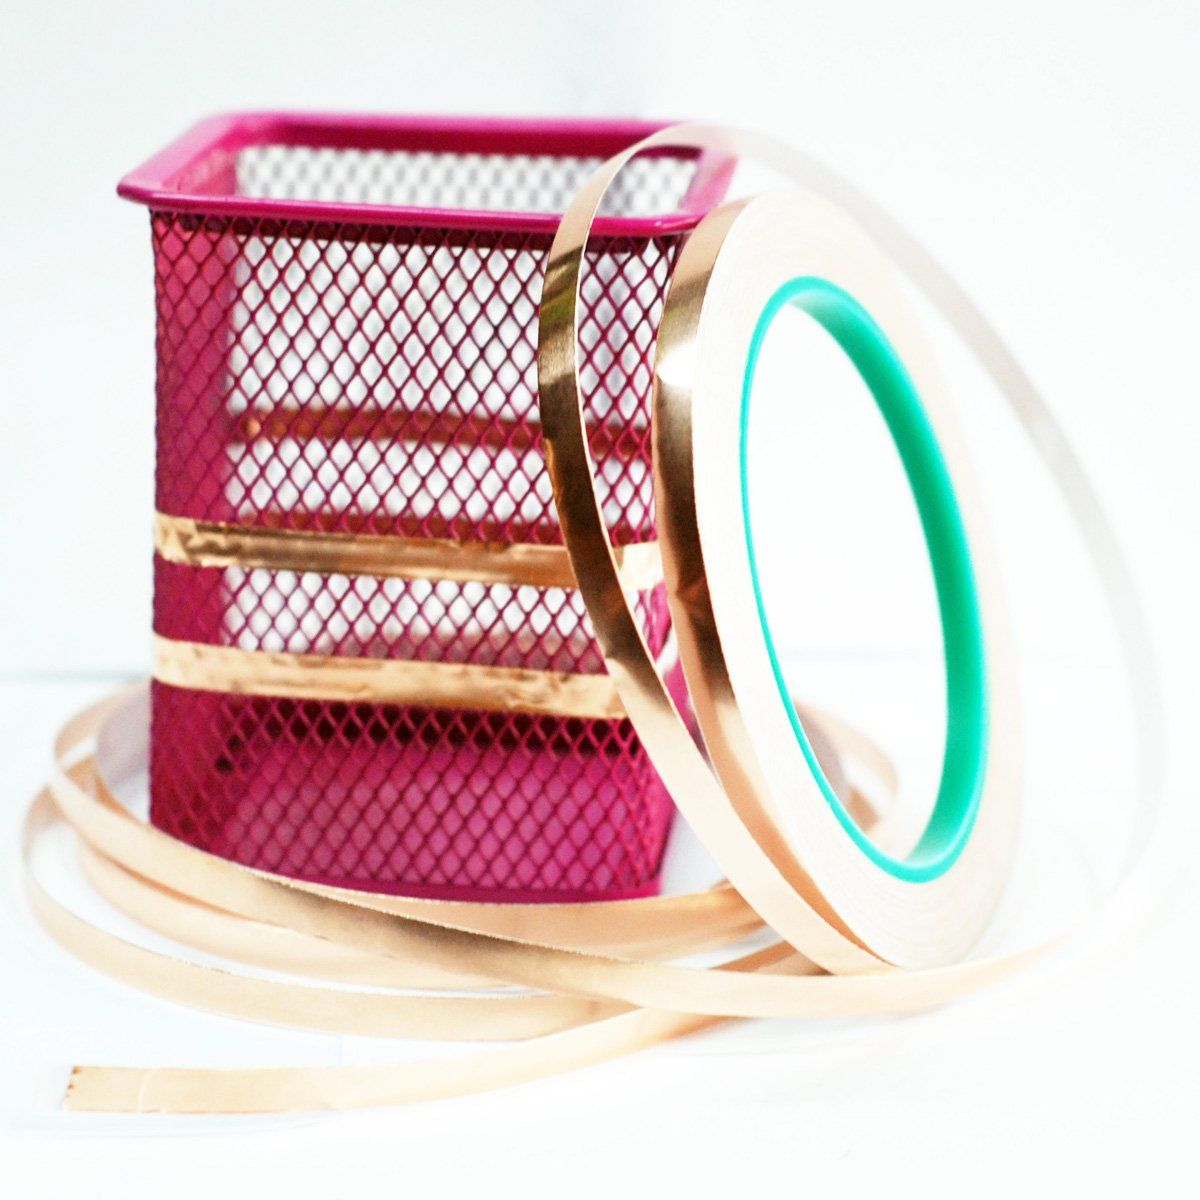 Copper Foil Tape,4Pcs DIKOO Double-Sided Conductive Adhesive (1/4inch X 21.8yards) for EMI Shielding,Slug Repellent,Electrical Repairs,Stained Glass,Art Work,Soldering,Grounding Paper Circuits,Crafts by DIKOO (Image #3)